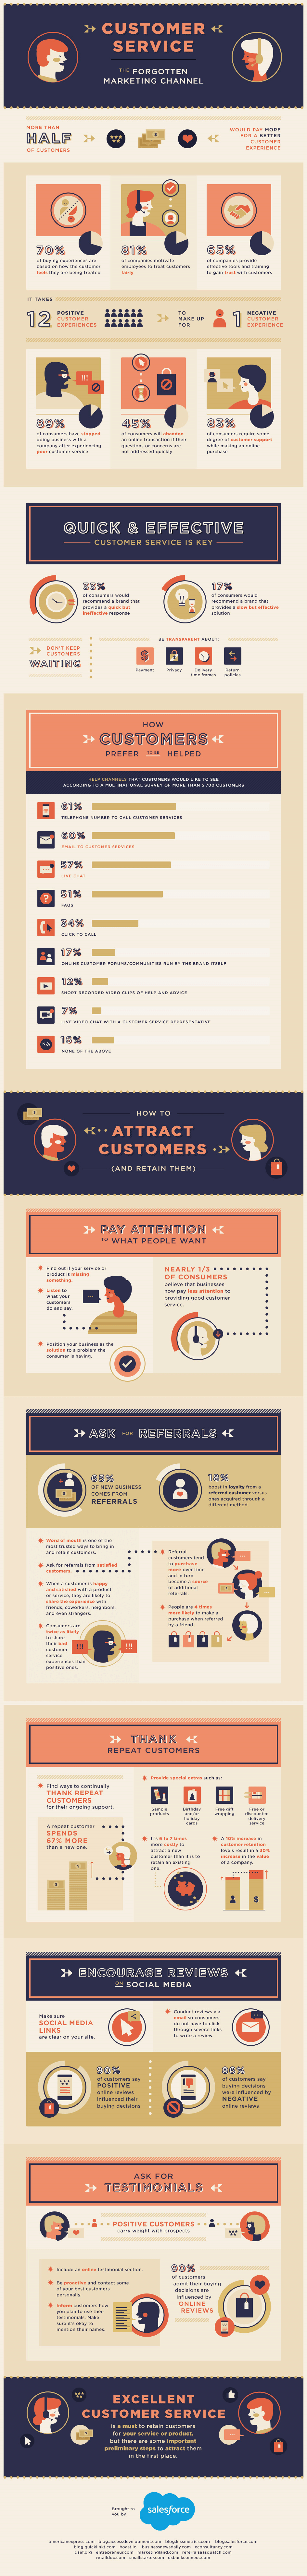 Customer Service: The Forgotten Marketing Channel